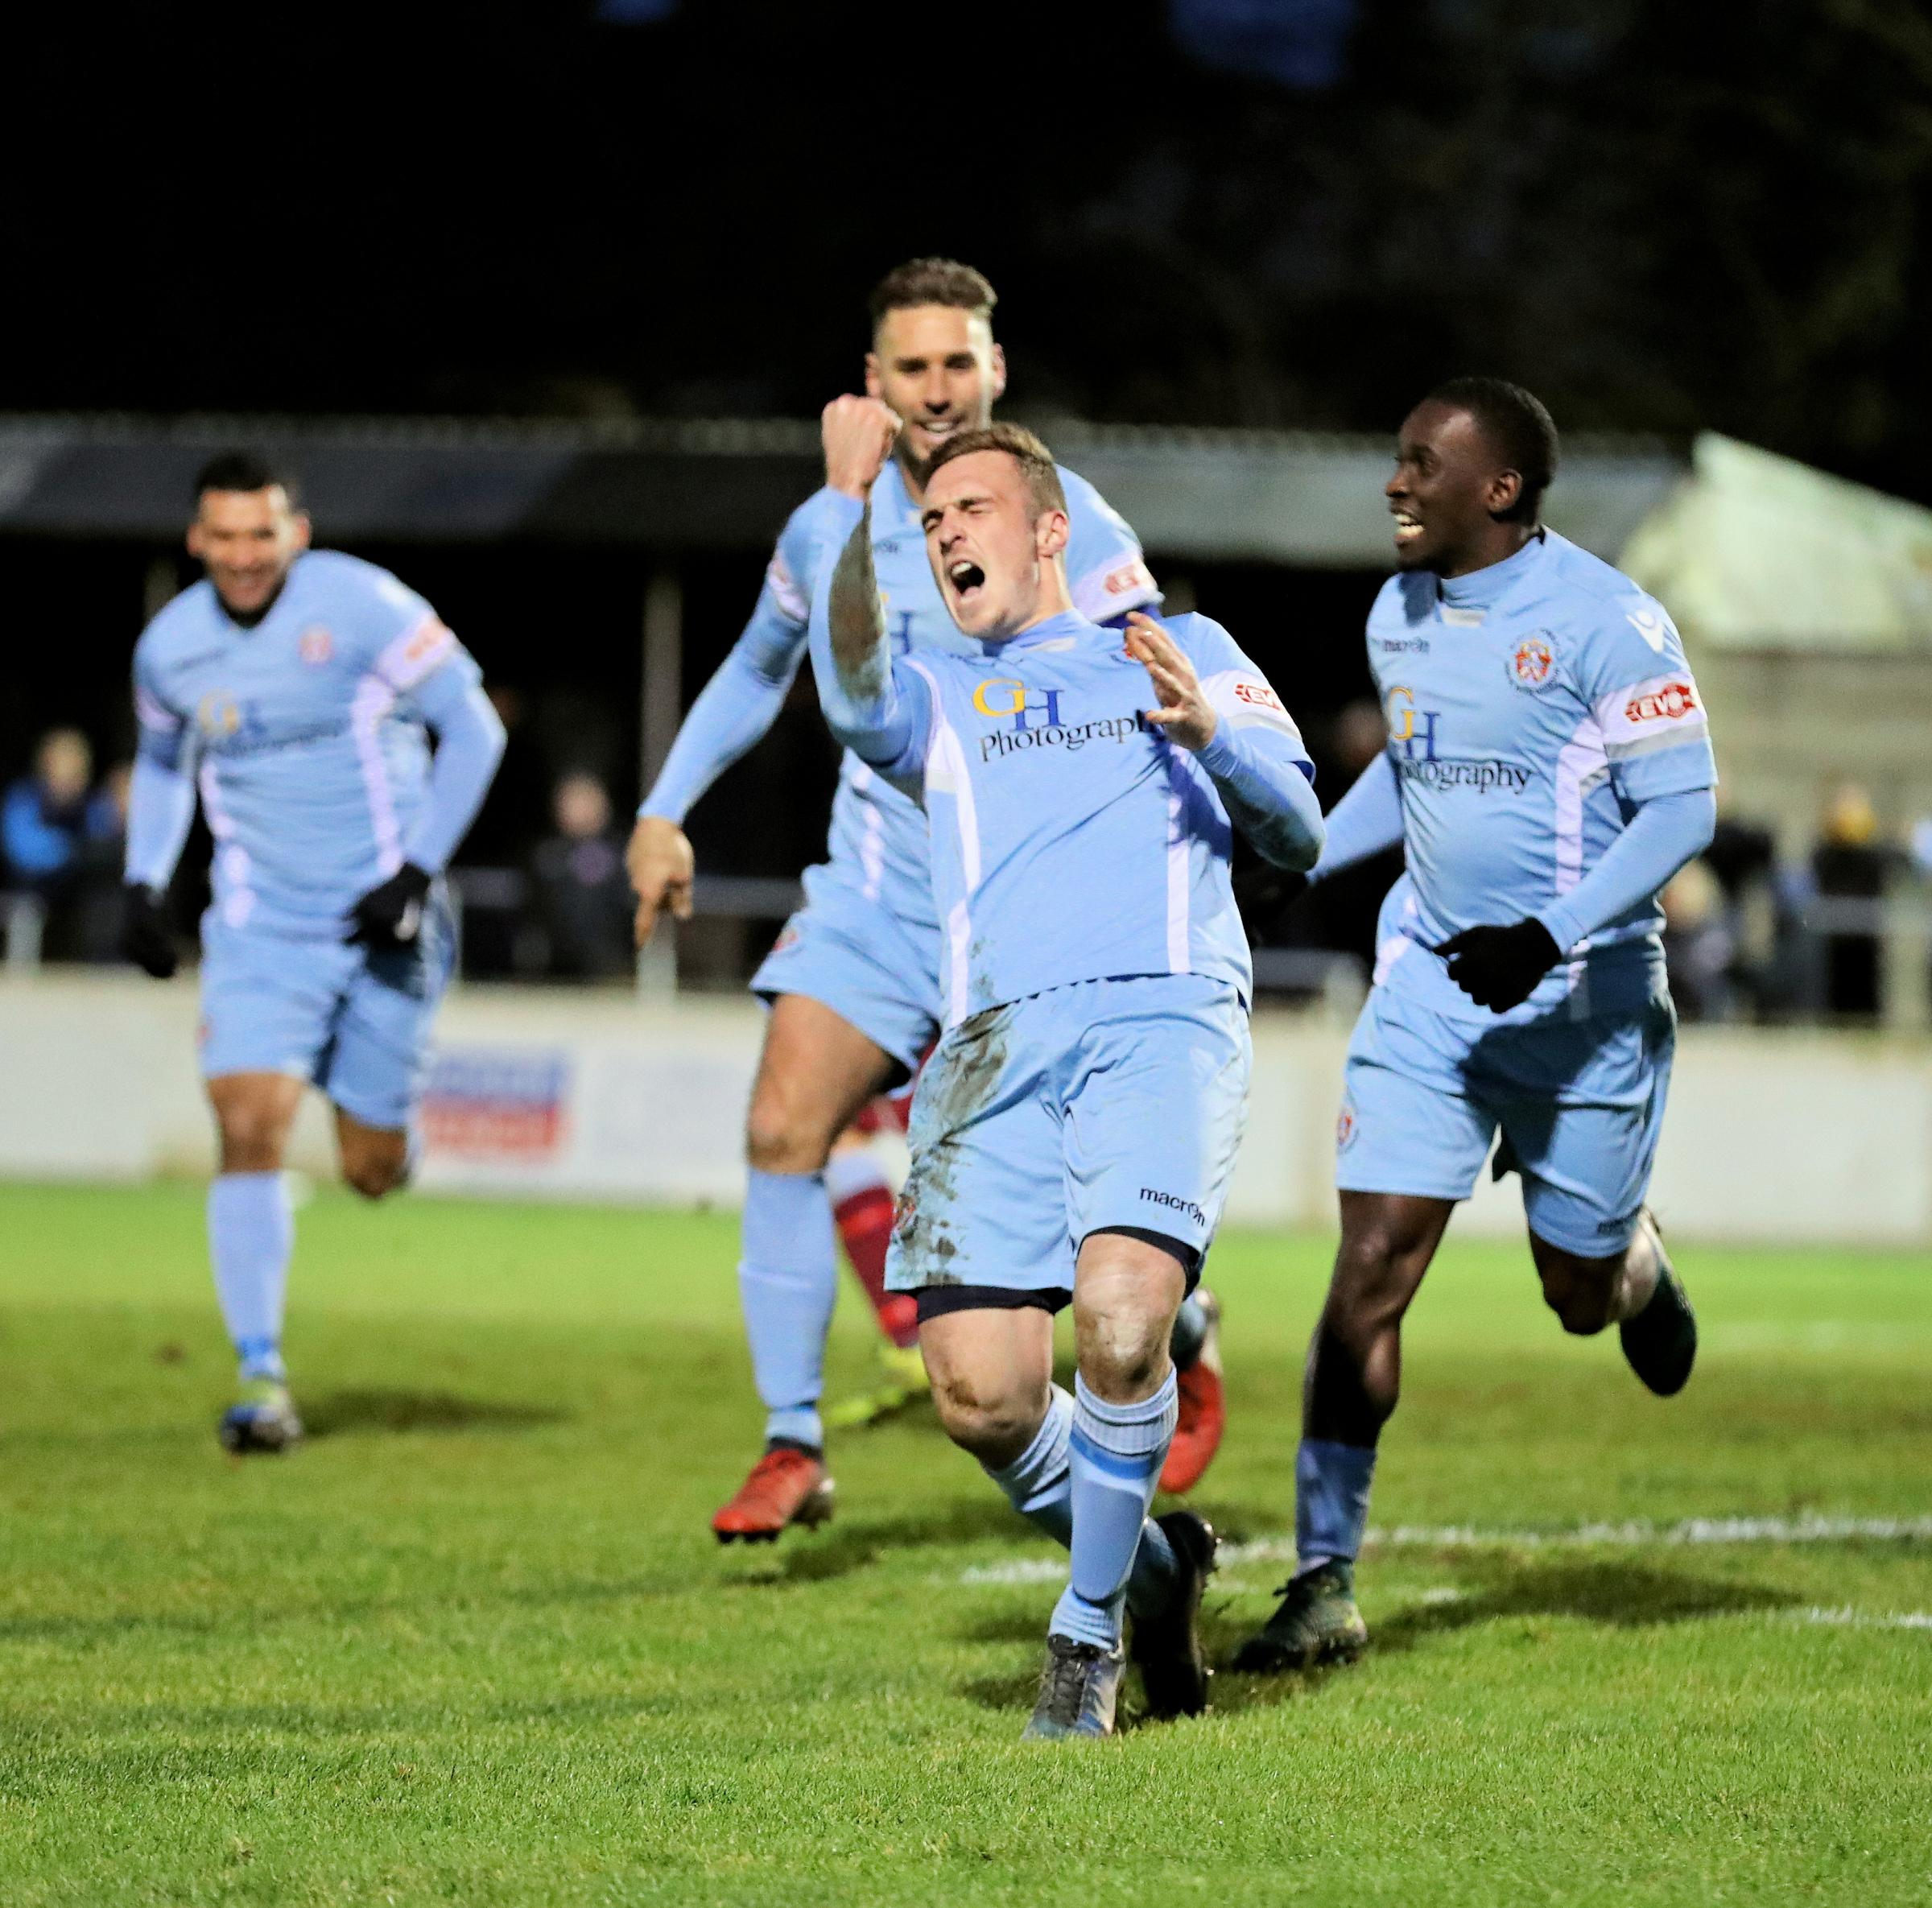 New Slough Town striker Ben Harris celebrates his goal on debut in the 1-1 draw at Chesham United on Monday. PHOTOS: Gary House Photography.